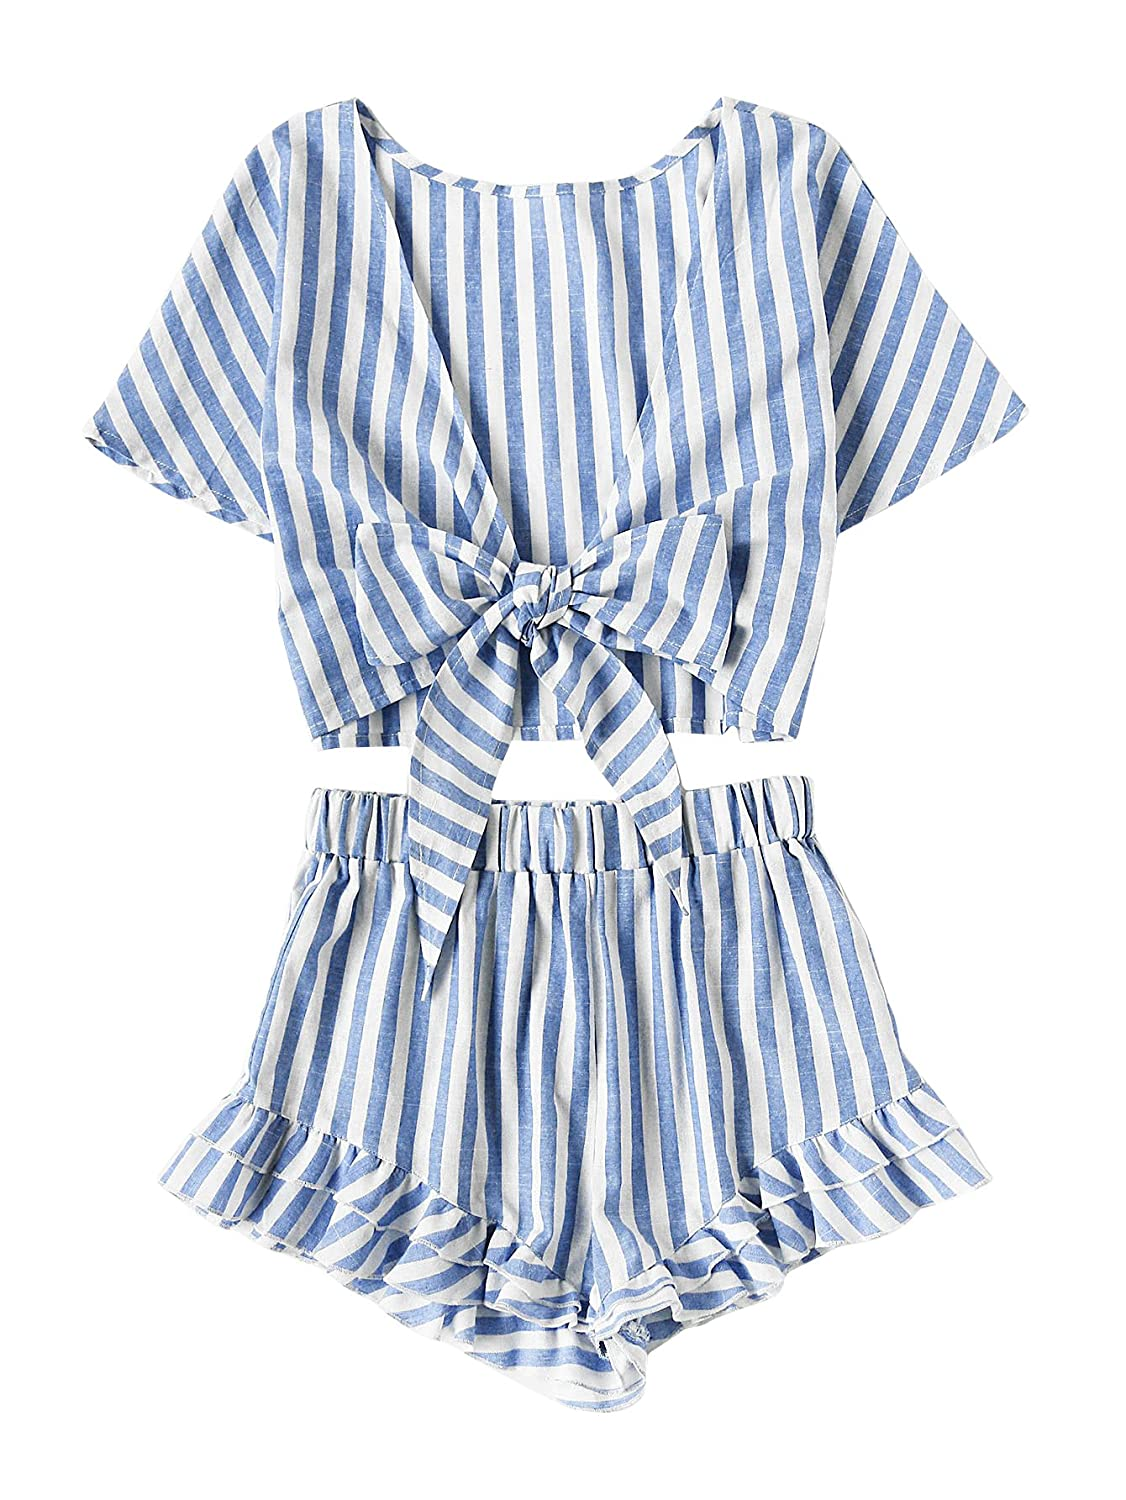 bluee 1 SweatyRocks Women's 2 Piece Outfit Striped V Neck Knot Front Crop Top with Shorts